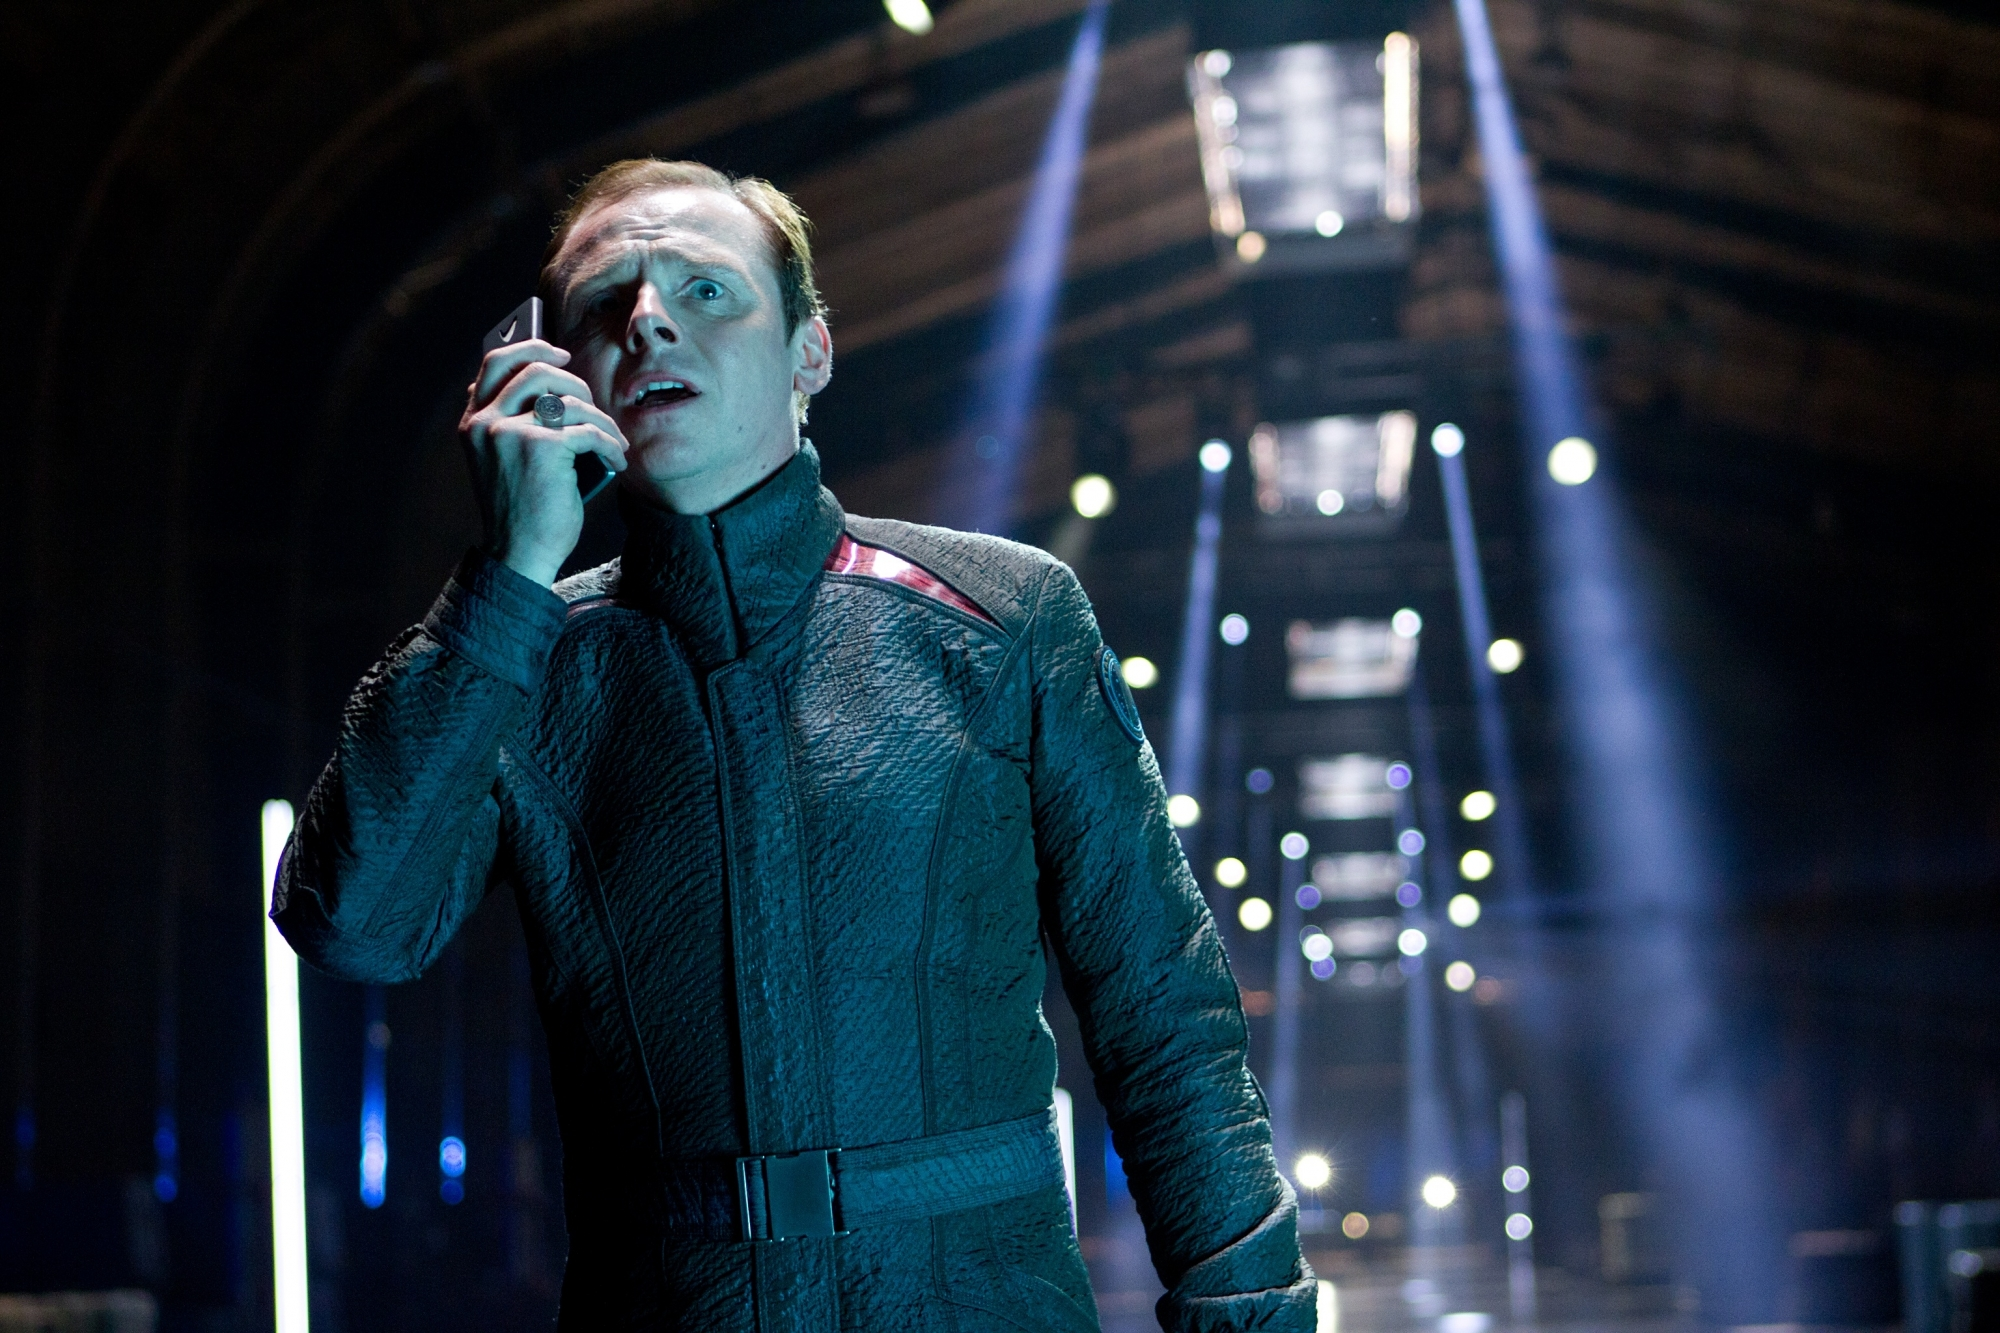 star-trek-into-darkness-simon-pegg1